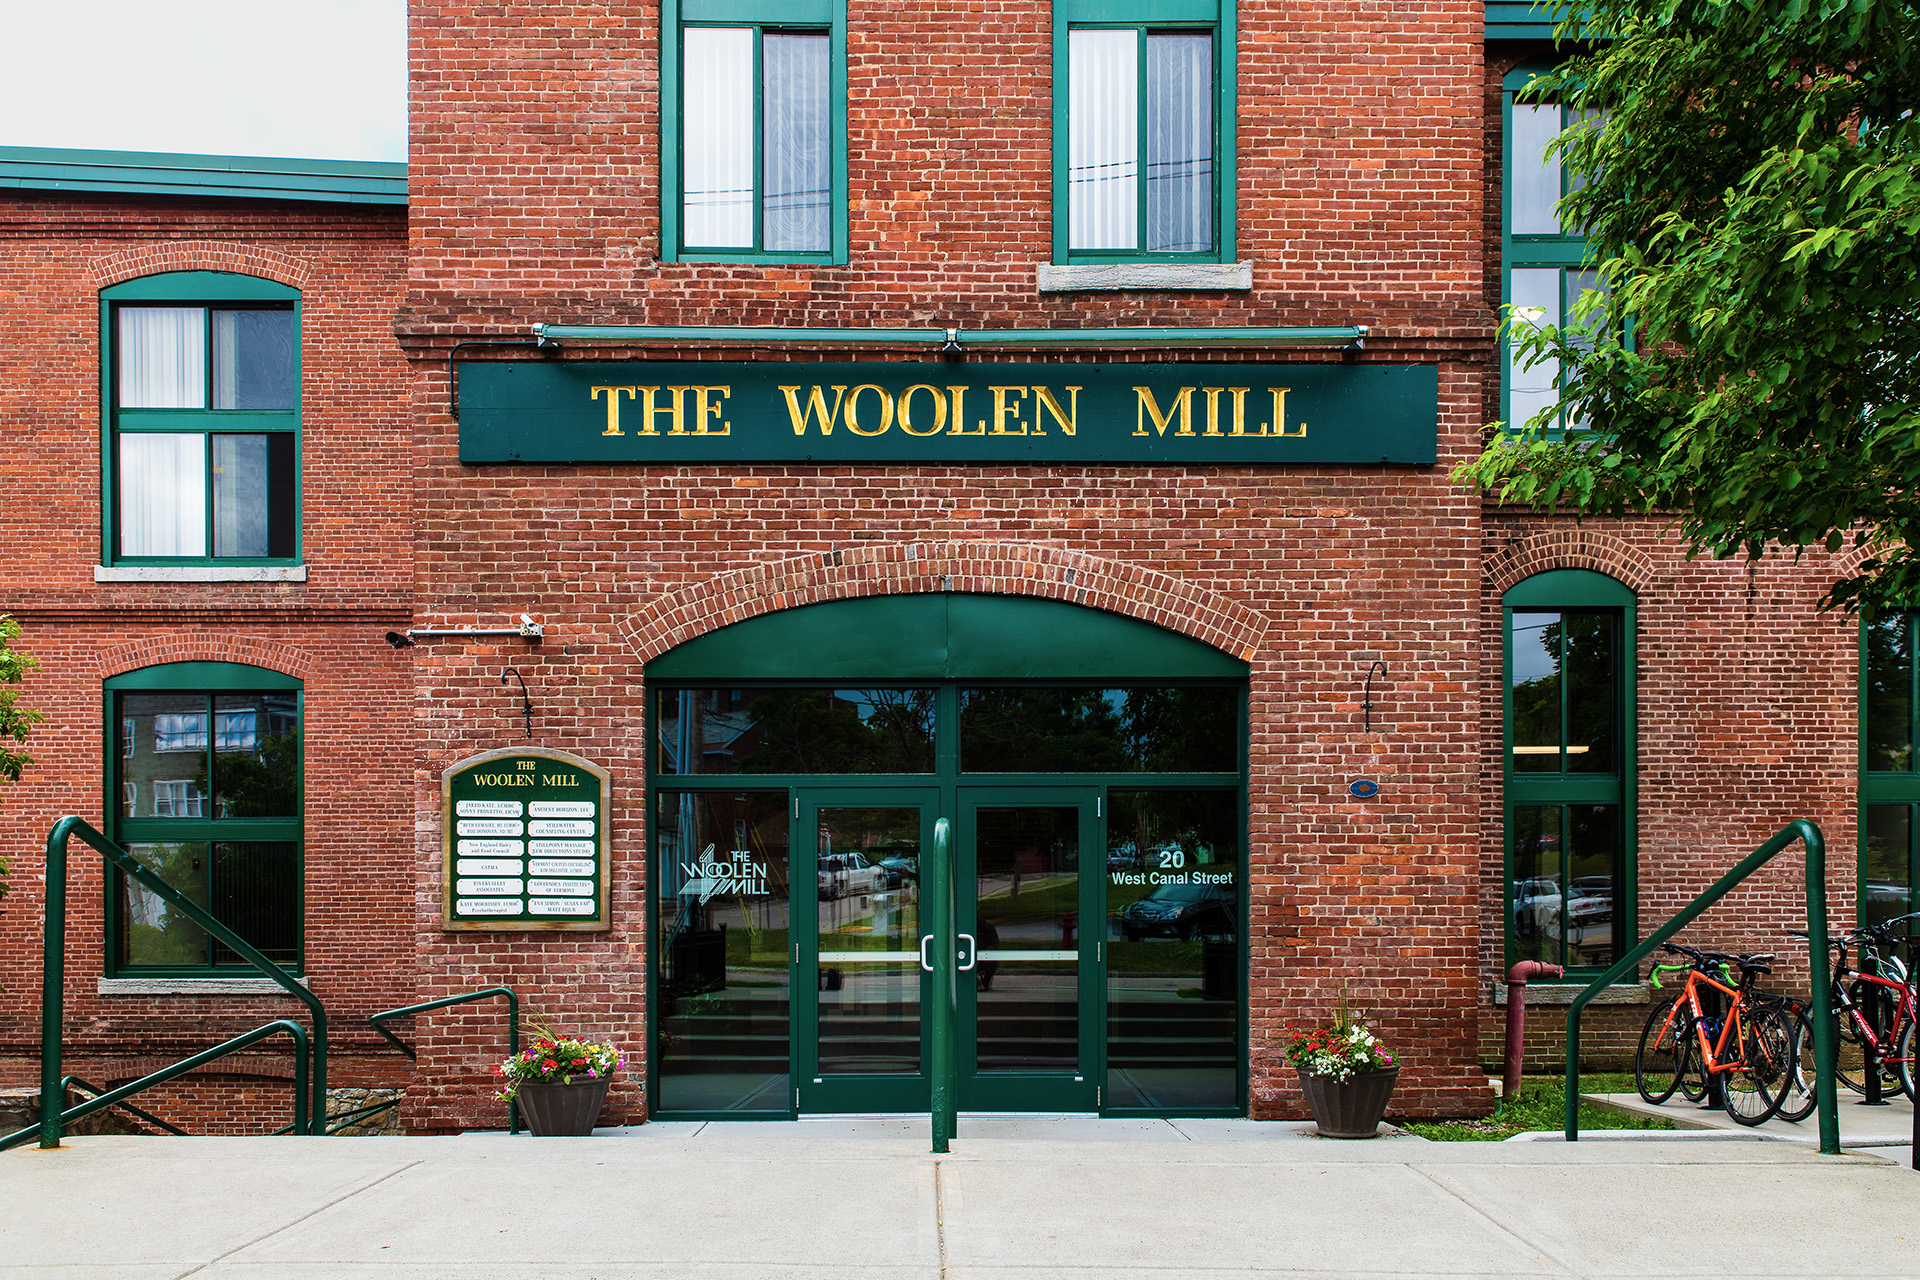 The Woolen Mill entry